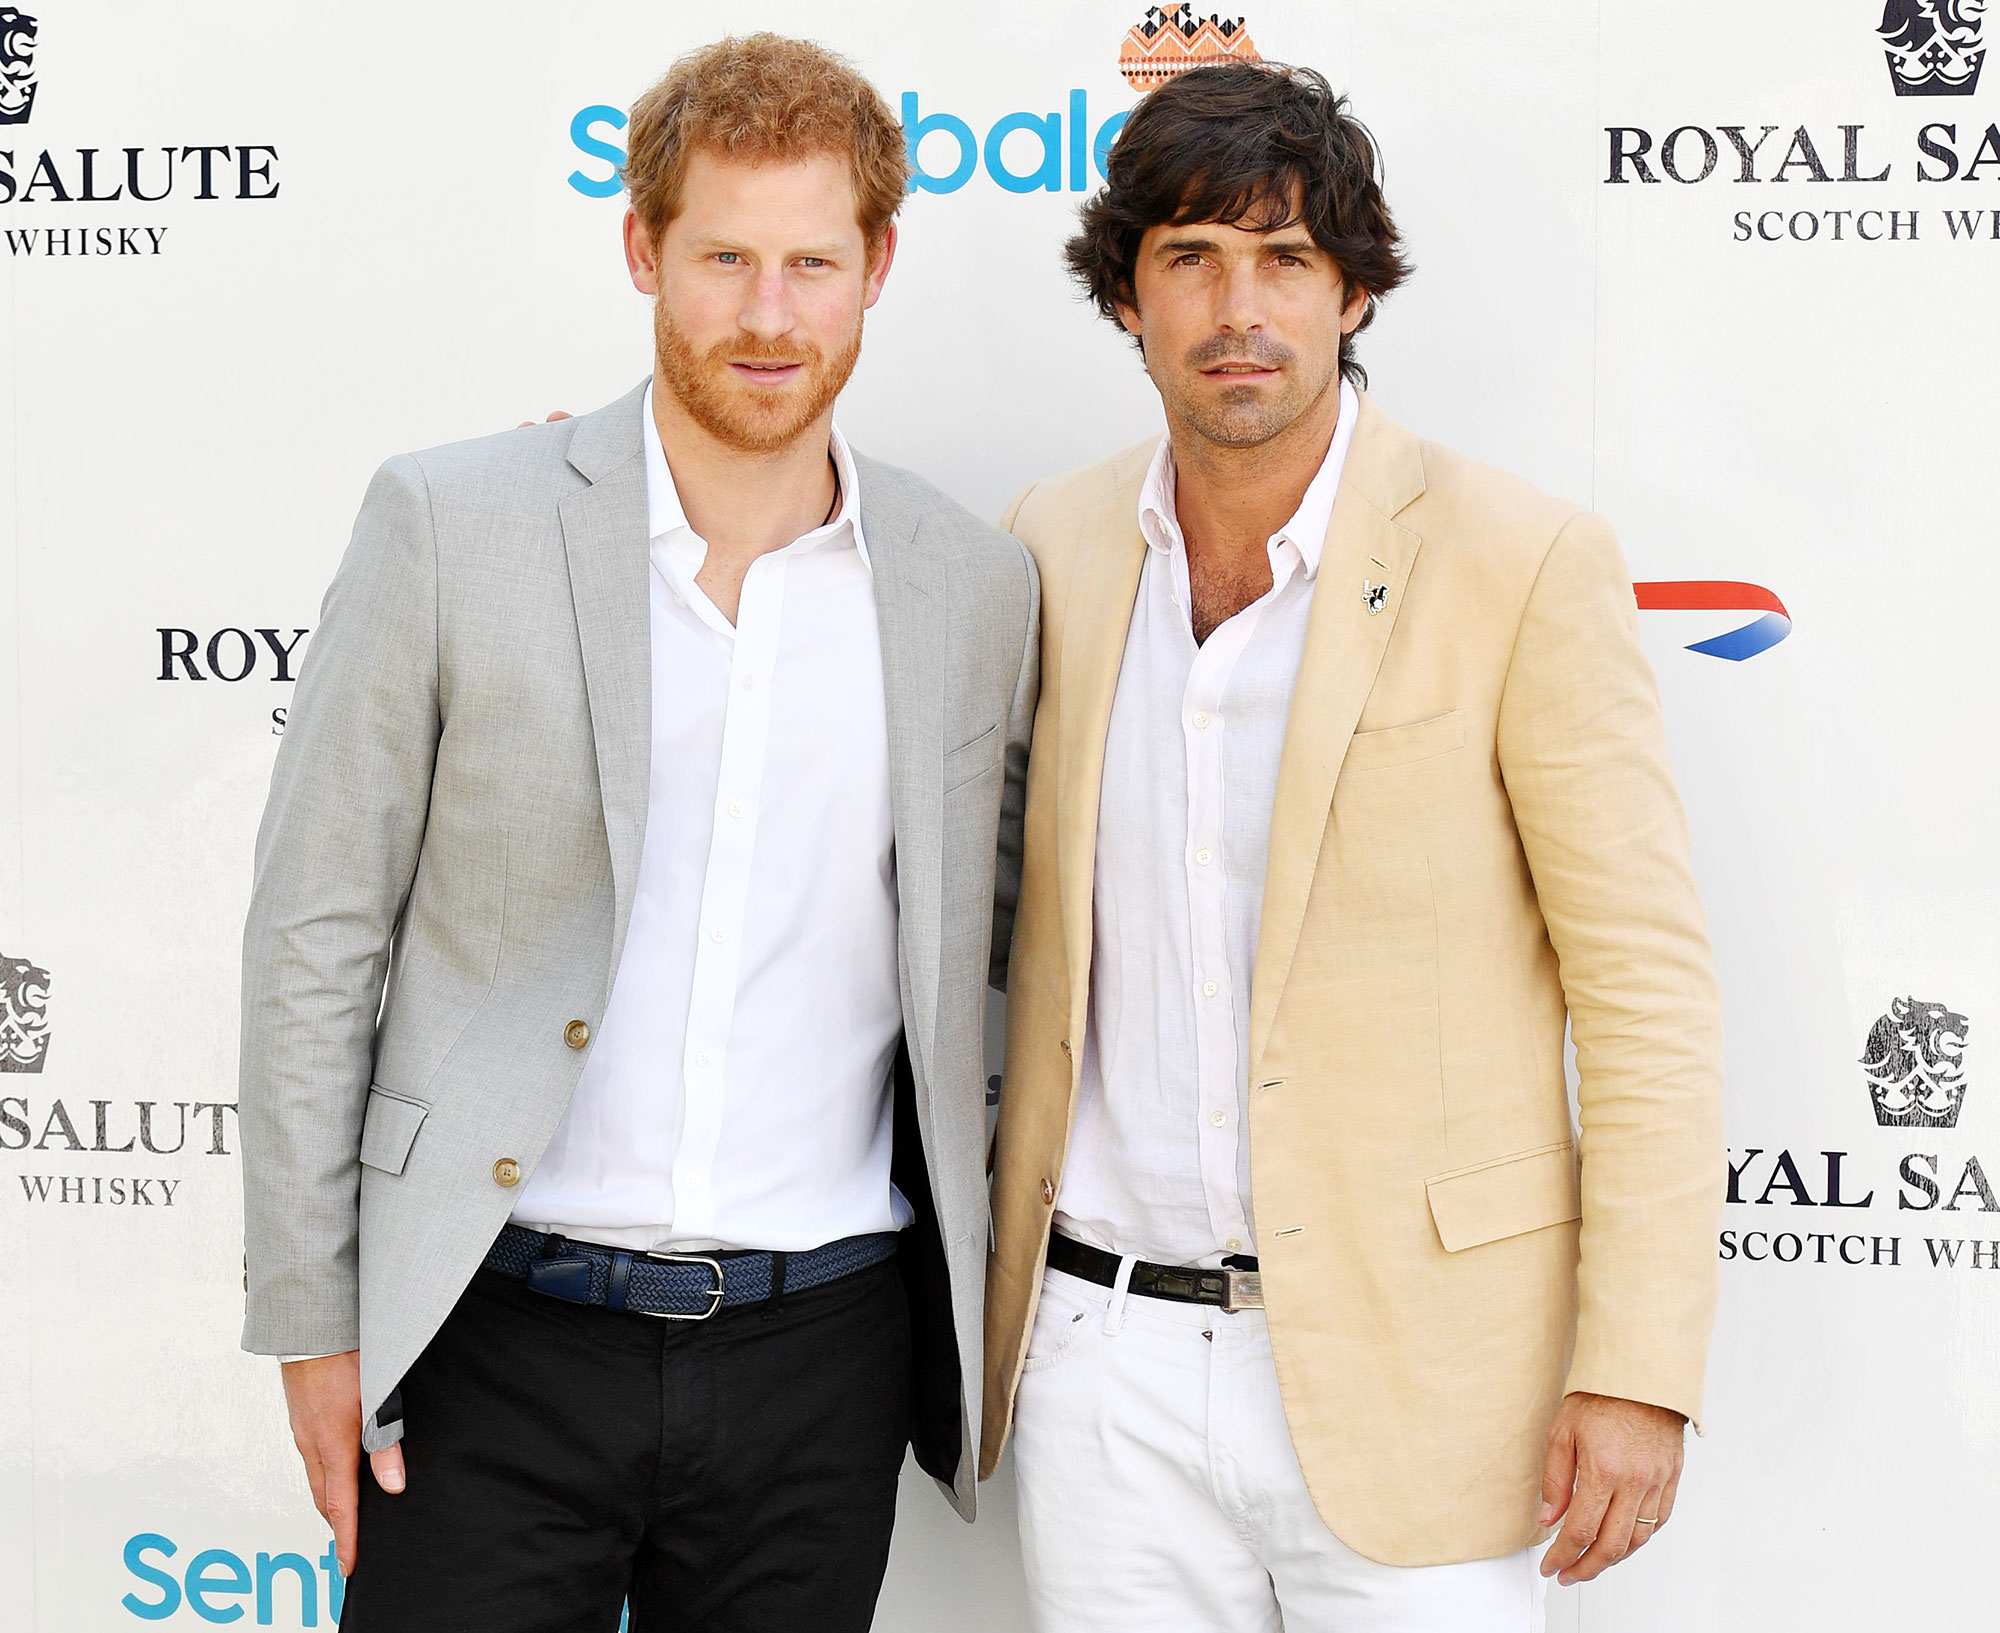 Prince Harry and Nacho Figueras at the Sentebale Royal Salute Polo Cup Prince Harry Has Suffered A Lot Longtime Friend Nacho Figueras Says